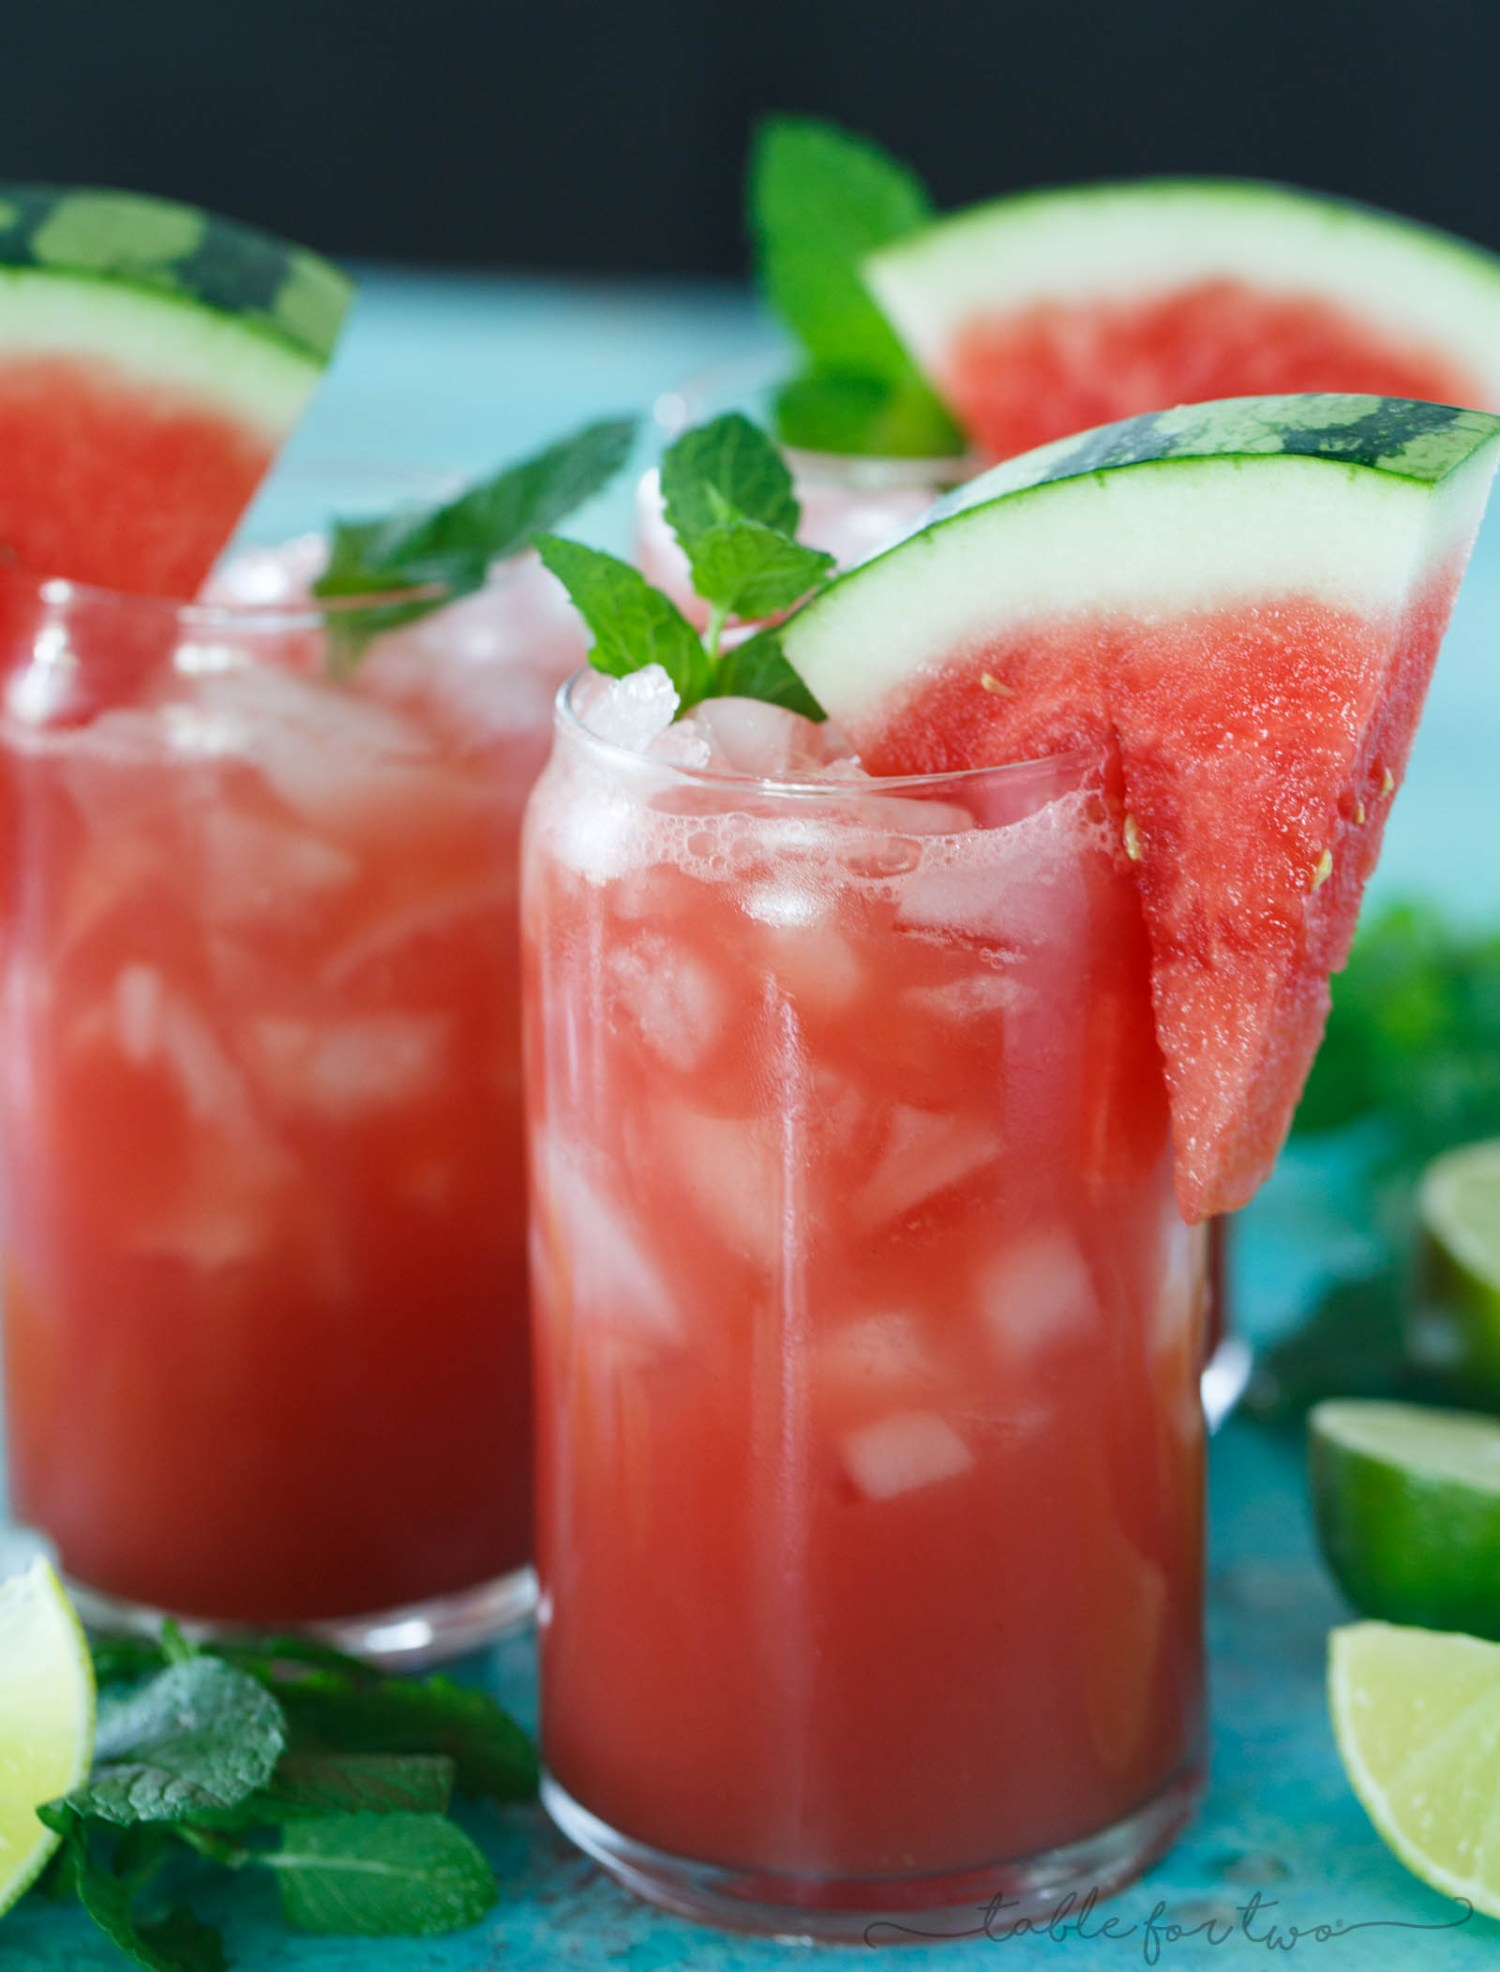 Watermelon Juice With Lime And Mint